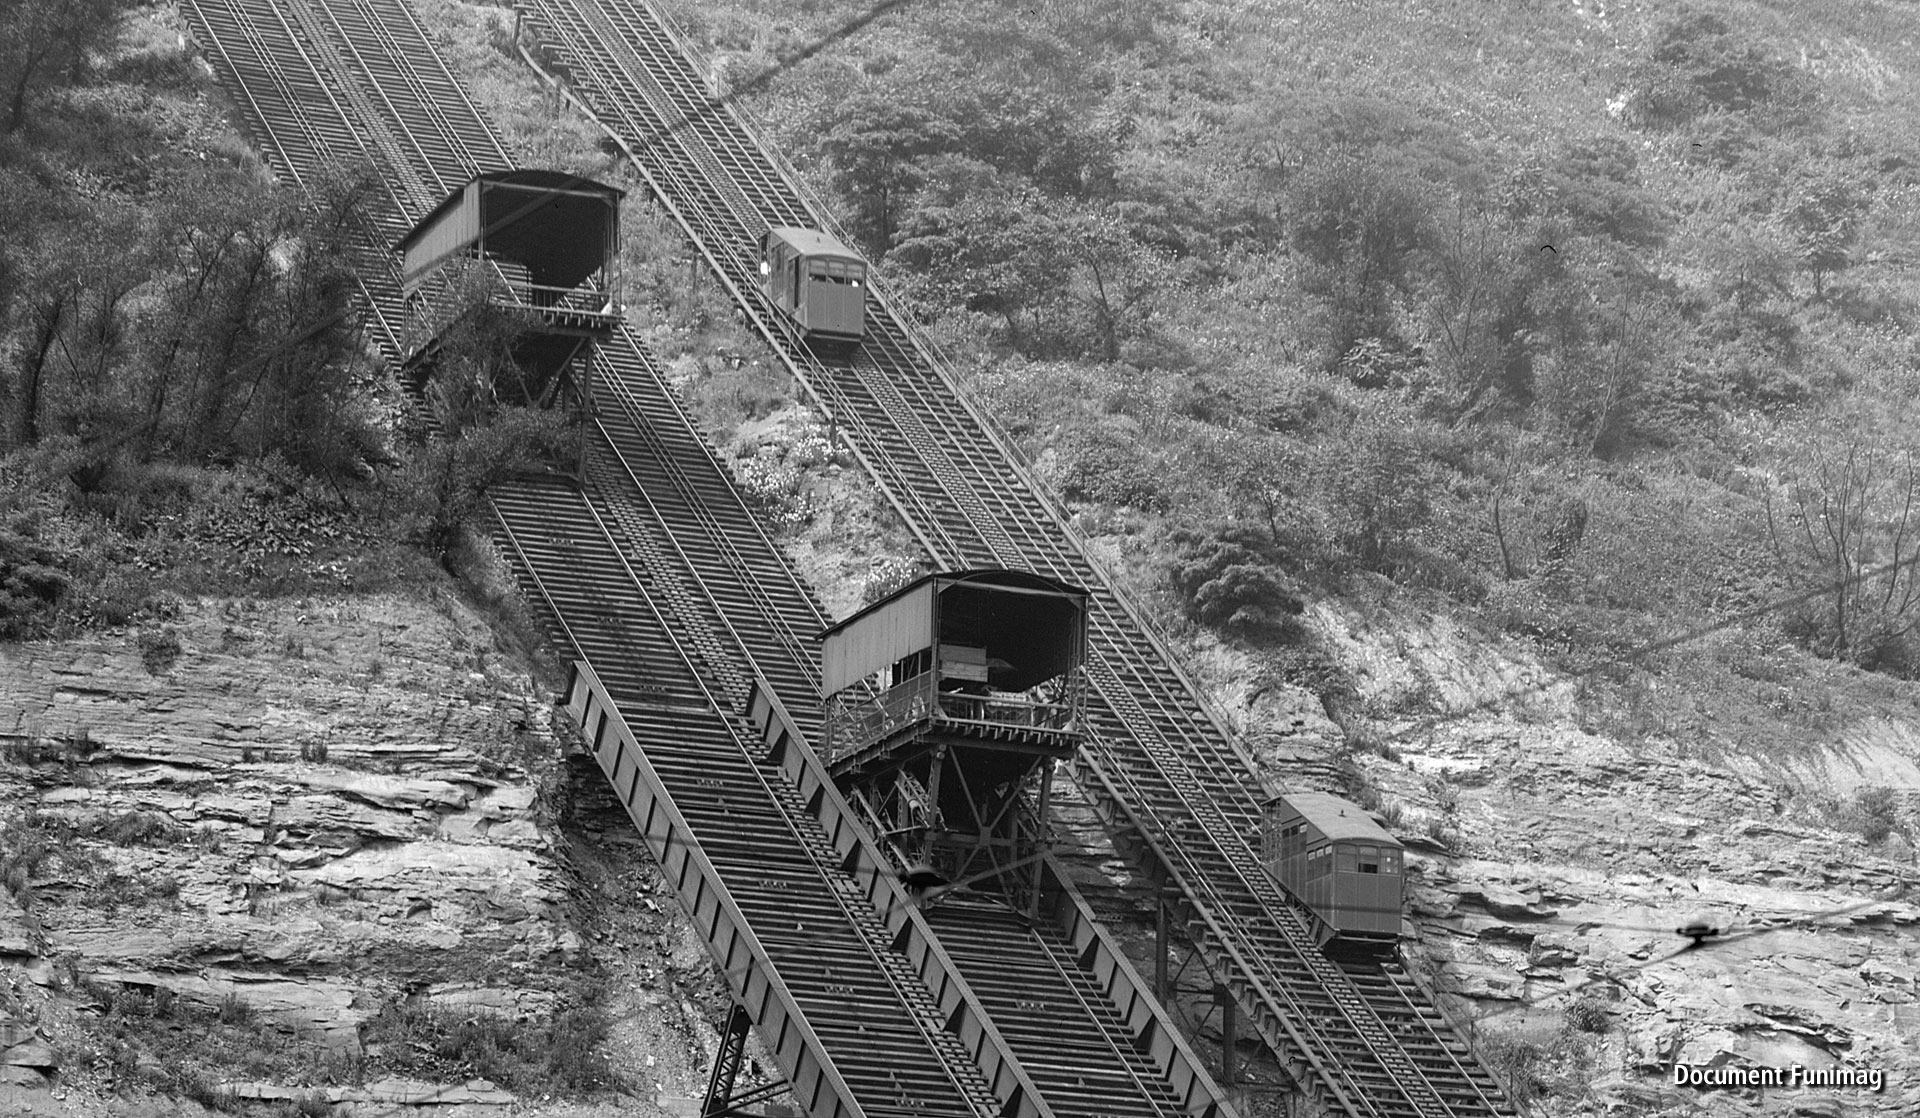 Pittsburgh Monongahela Inclines 1905